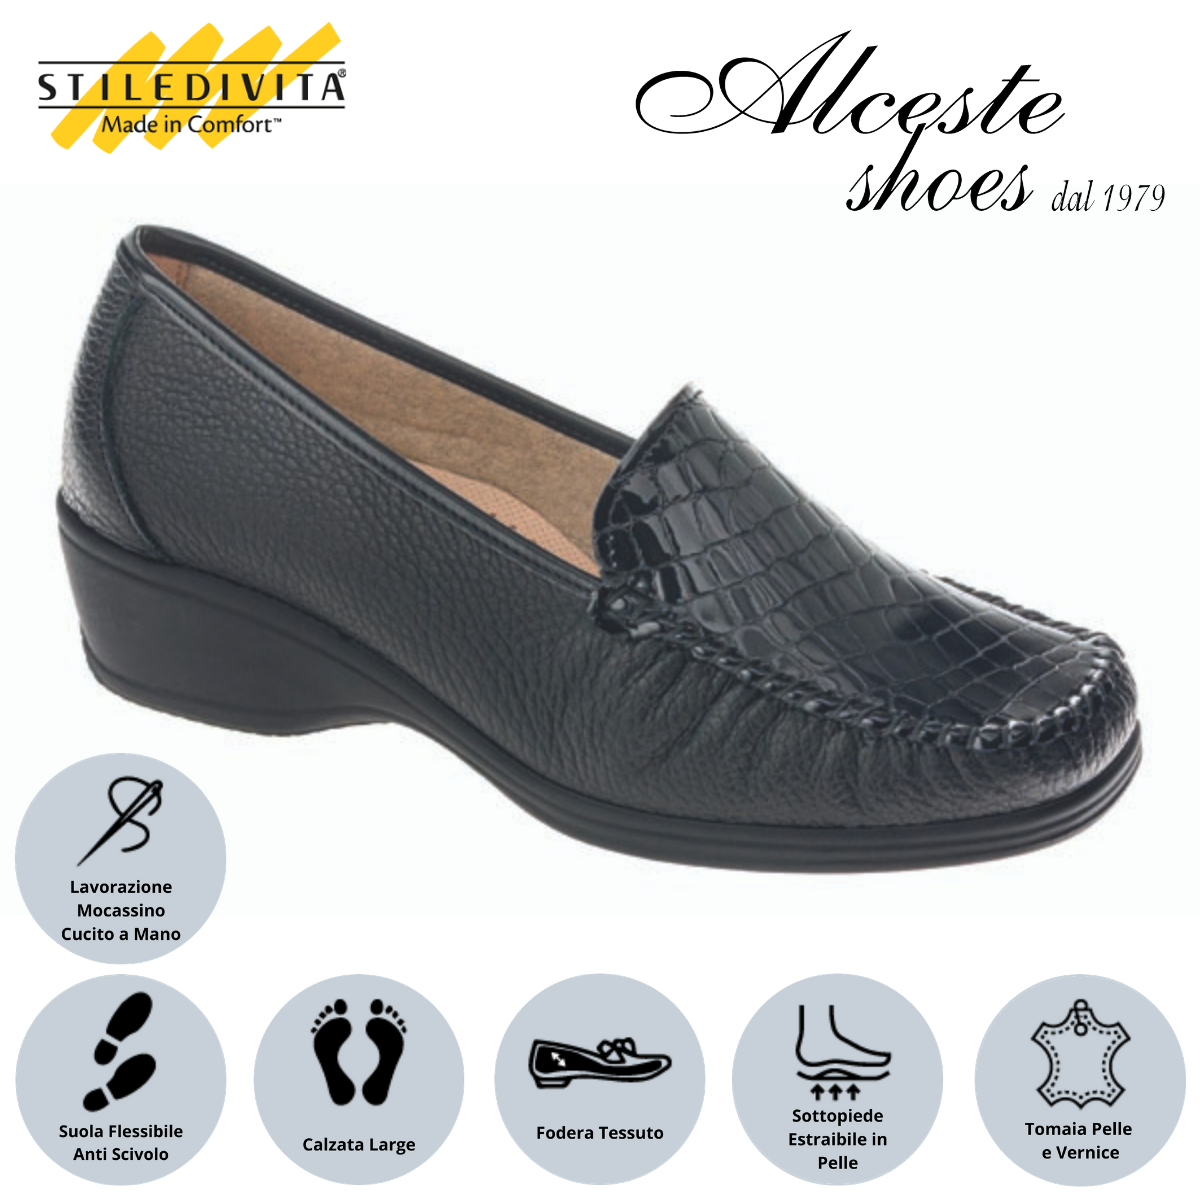 Mocassino Stiledivita art. 2377 nero